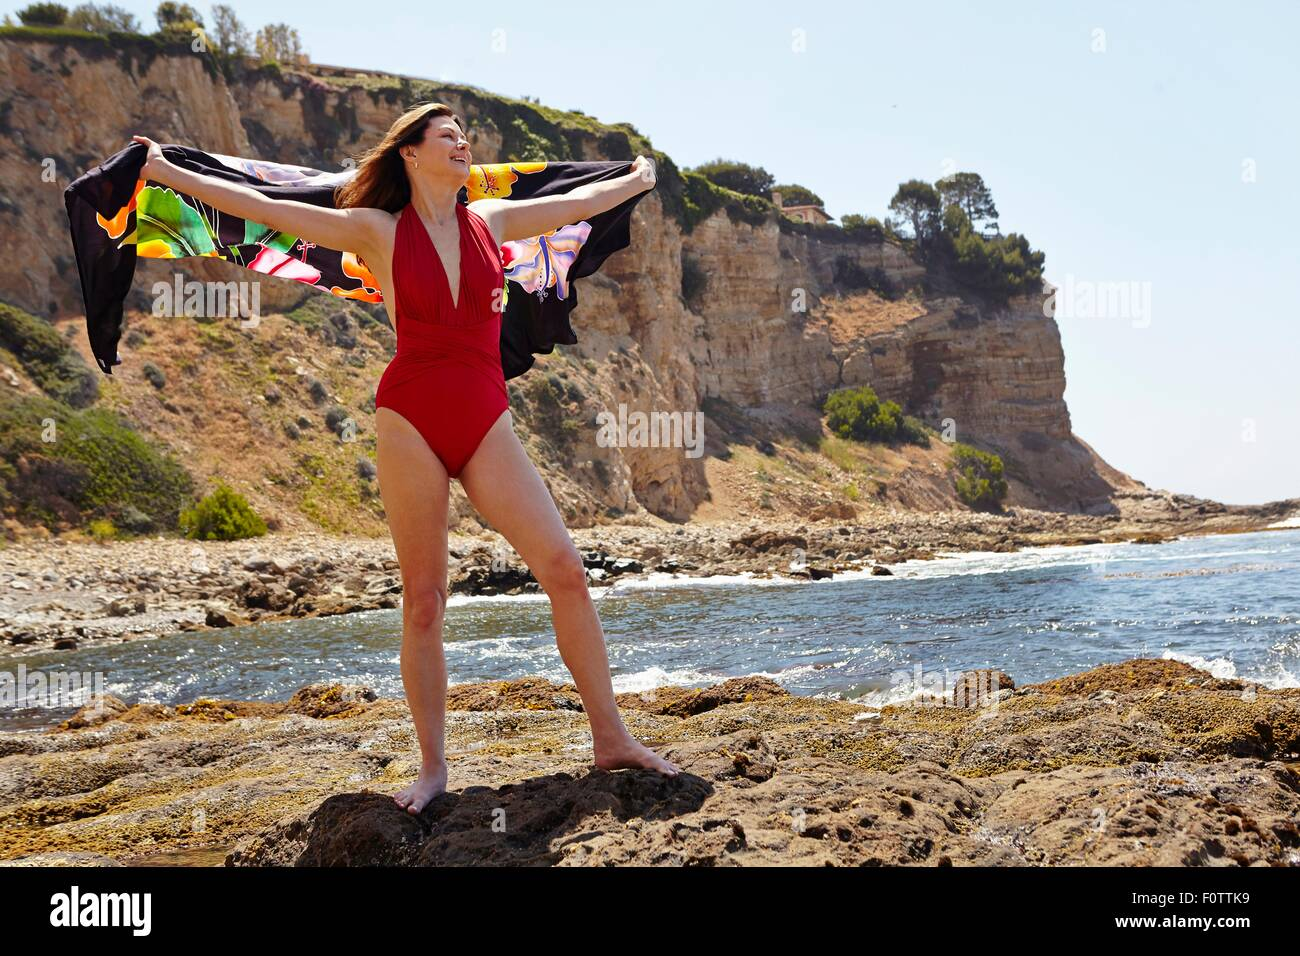 Portrait of mature woman wearing red bathing costume posing with sarong at coast - Stock Image